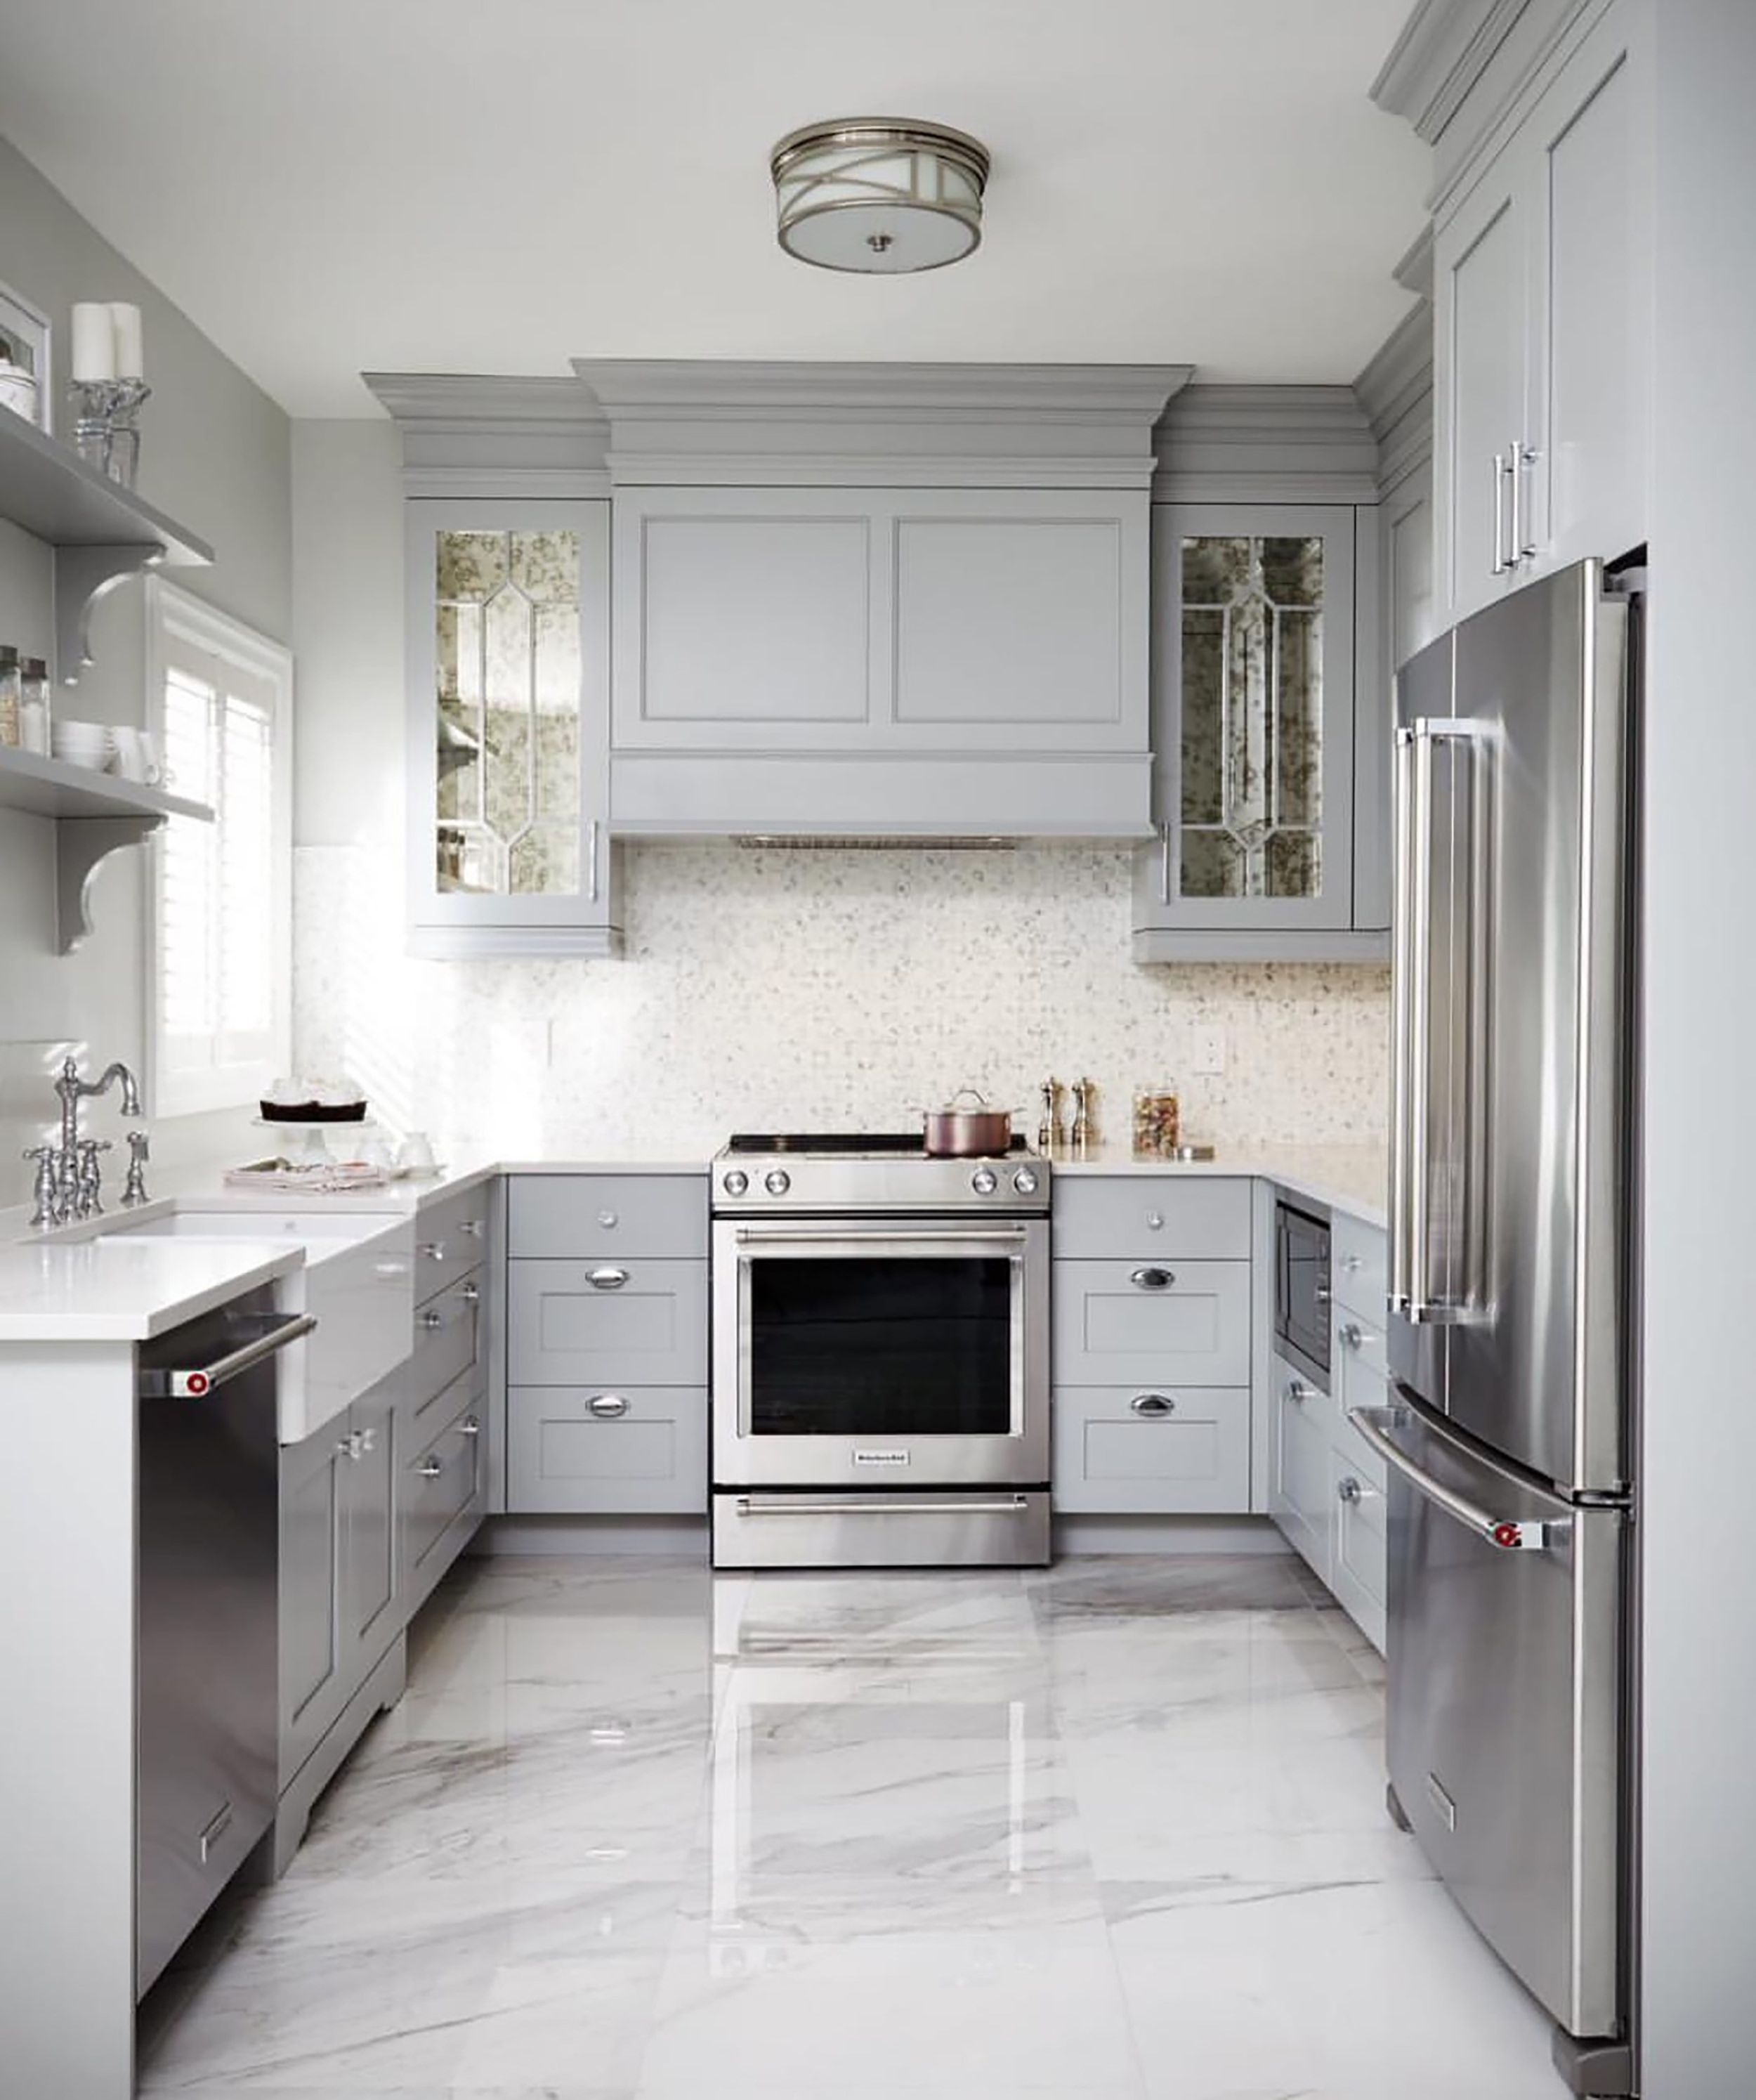 37++ Grey tile floors white cabinets ideas in 2021